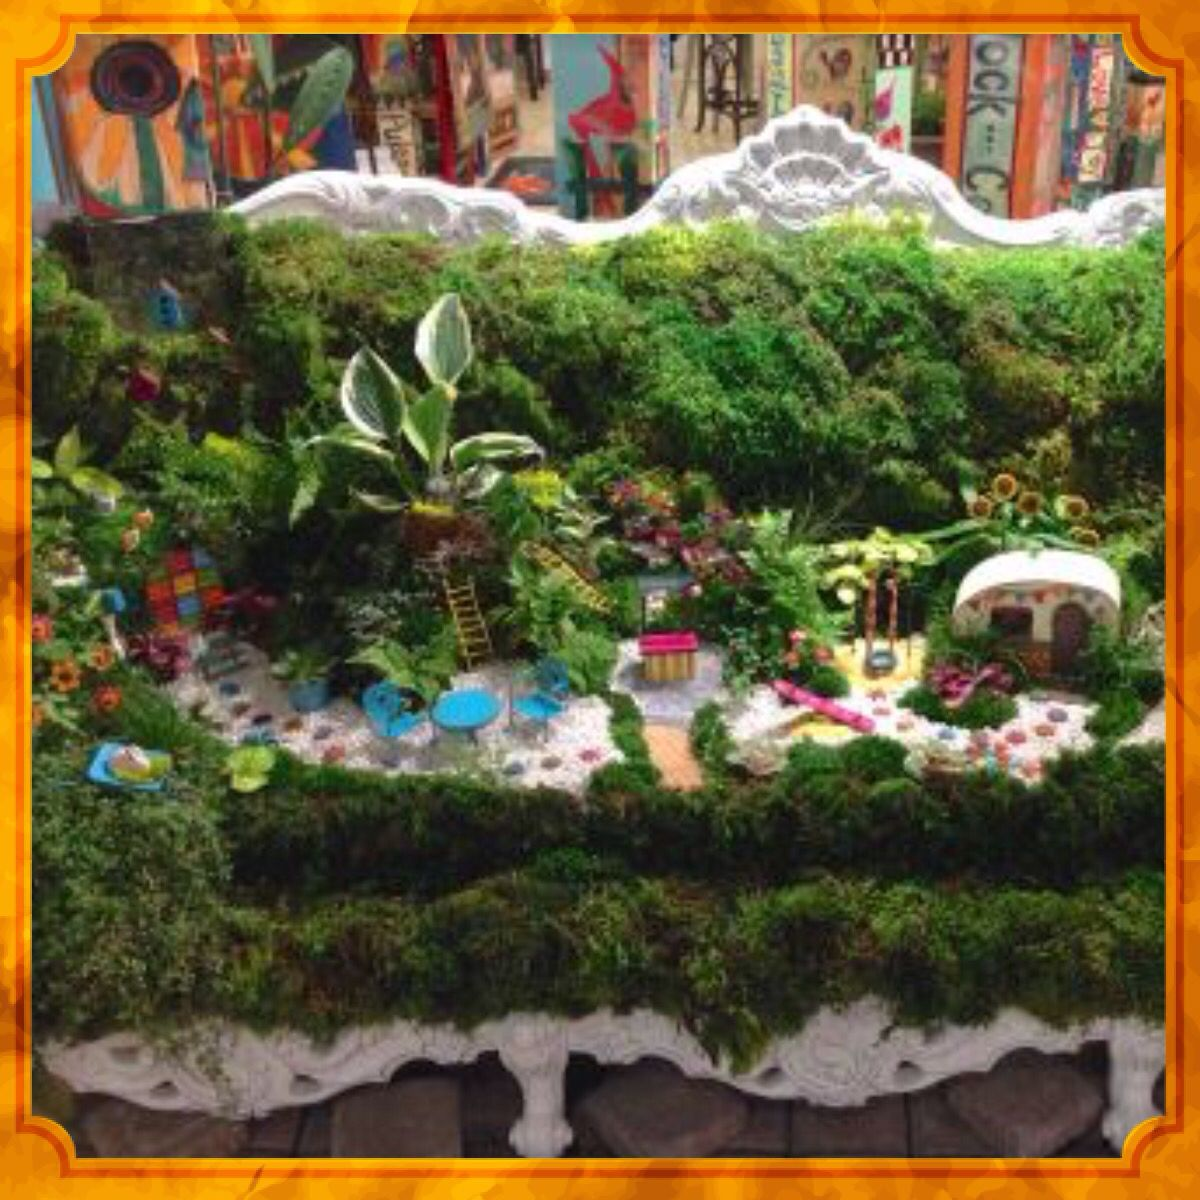 Andreas schnuck store 4892 w main st berlin ohio garden flags fairy garden supplies